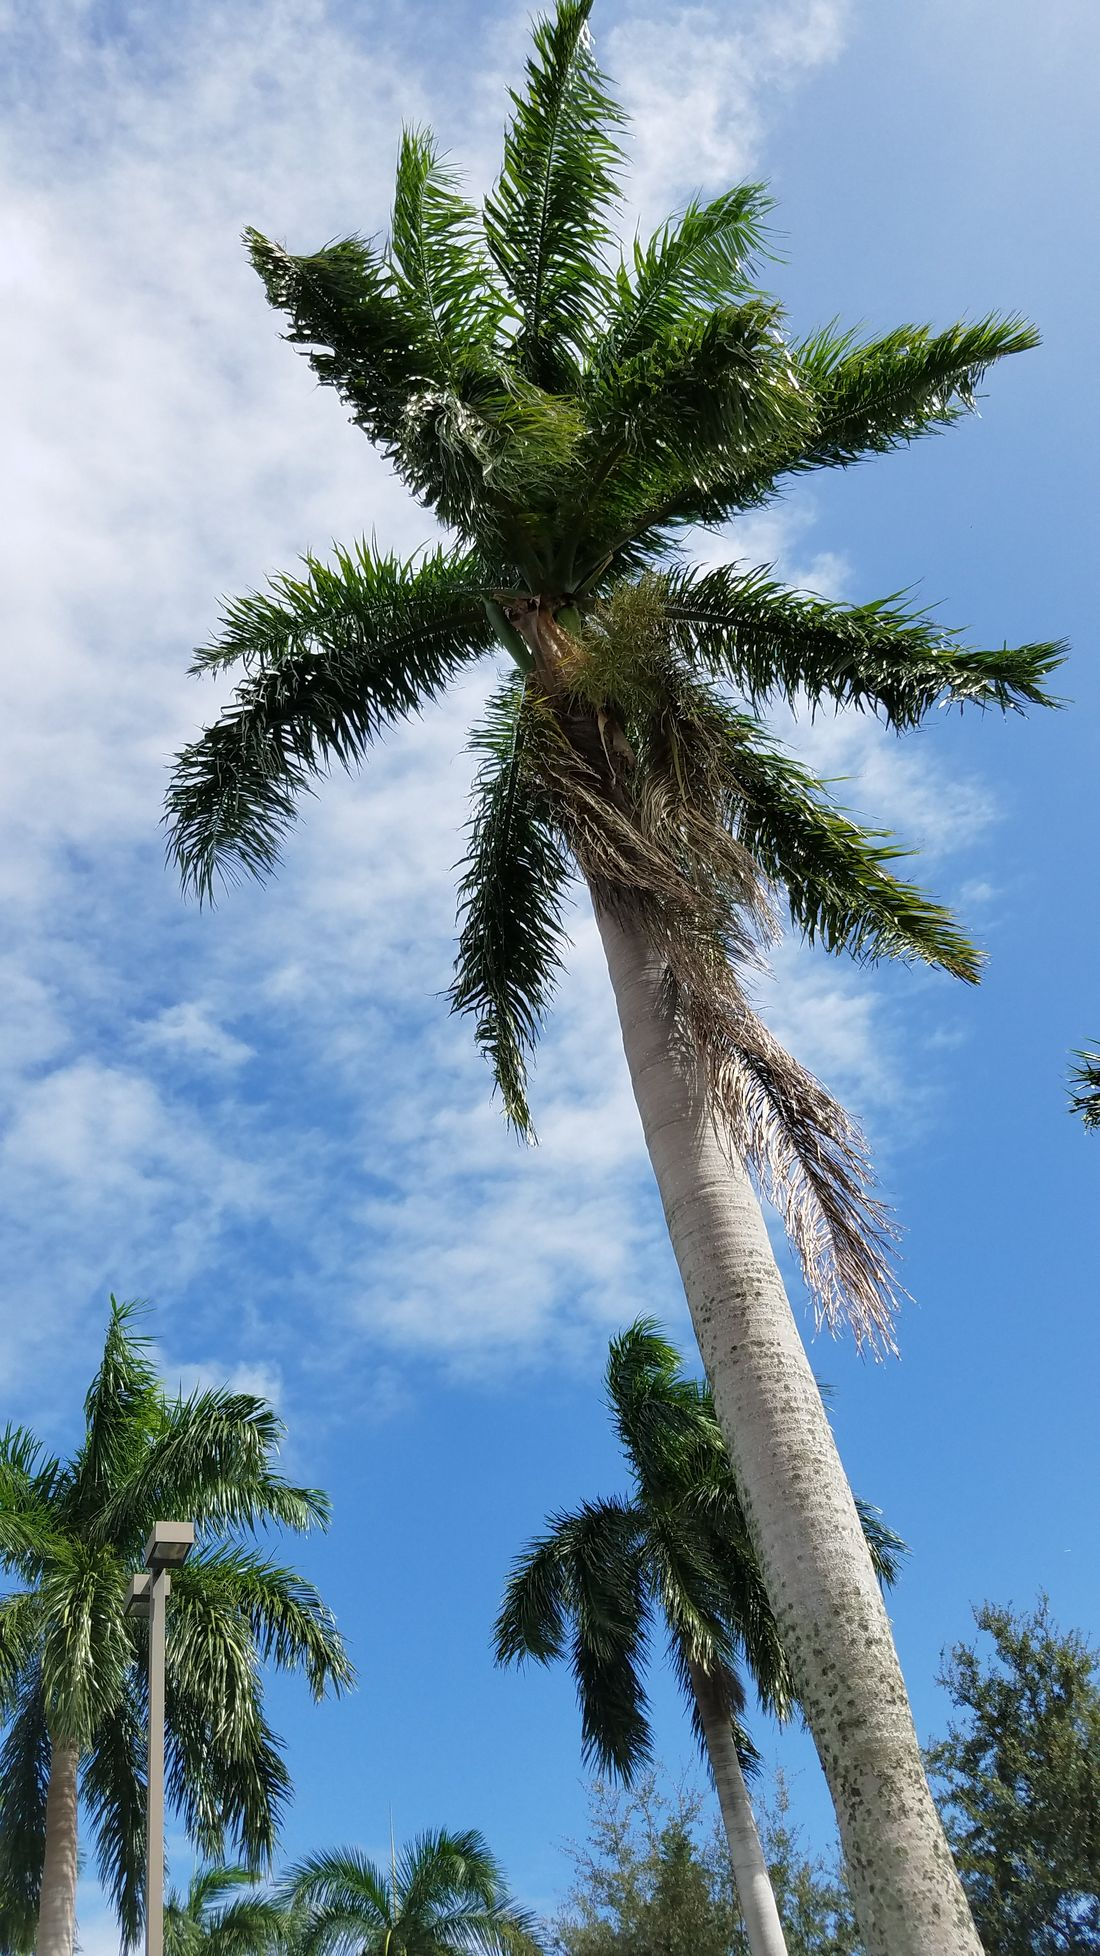 South Florida Florida Skies Low Angle View Tree Growth Sky Palm Tree Blue Tree Trunk Tranquility Nature Photography Nature Scenics Branch Tranquil Scene Beauty In Nature Cloud Tall - High Day Cloud - Sky Treetop Outdoors Green